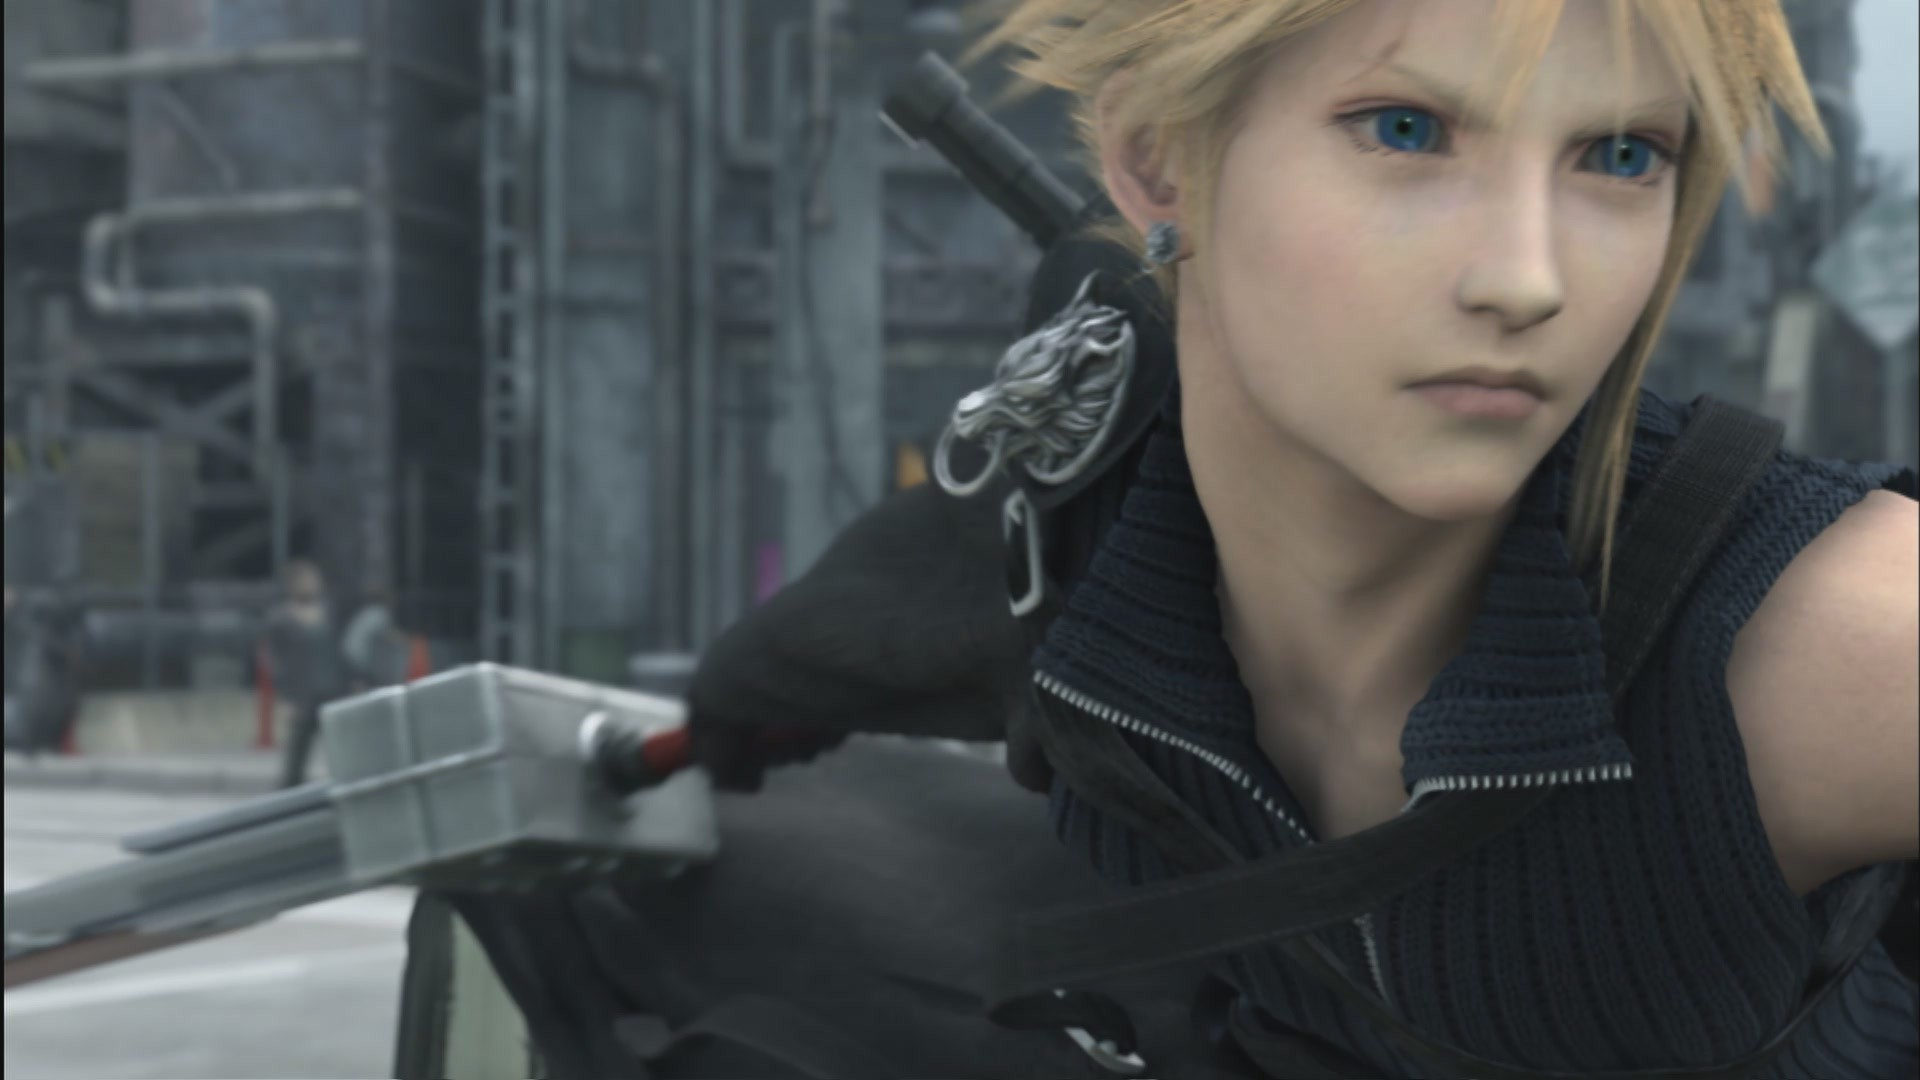 movies, Final Fantasy, Cloud Strife, Final Fantasy VII: Advent Children  Wallpapers HD / Desktop and Mobile Backgrounds